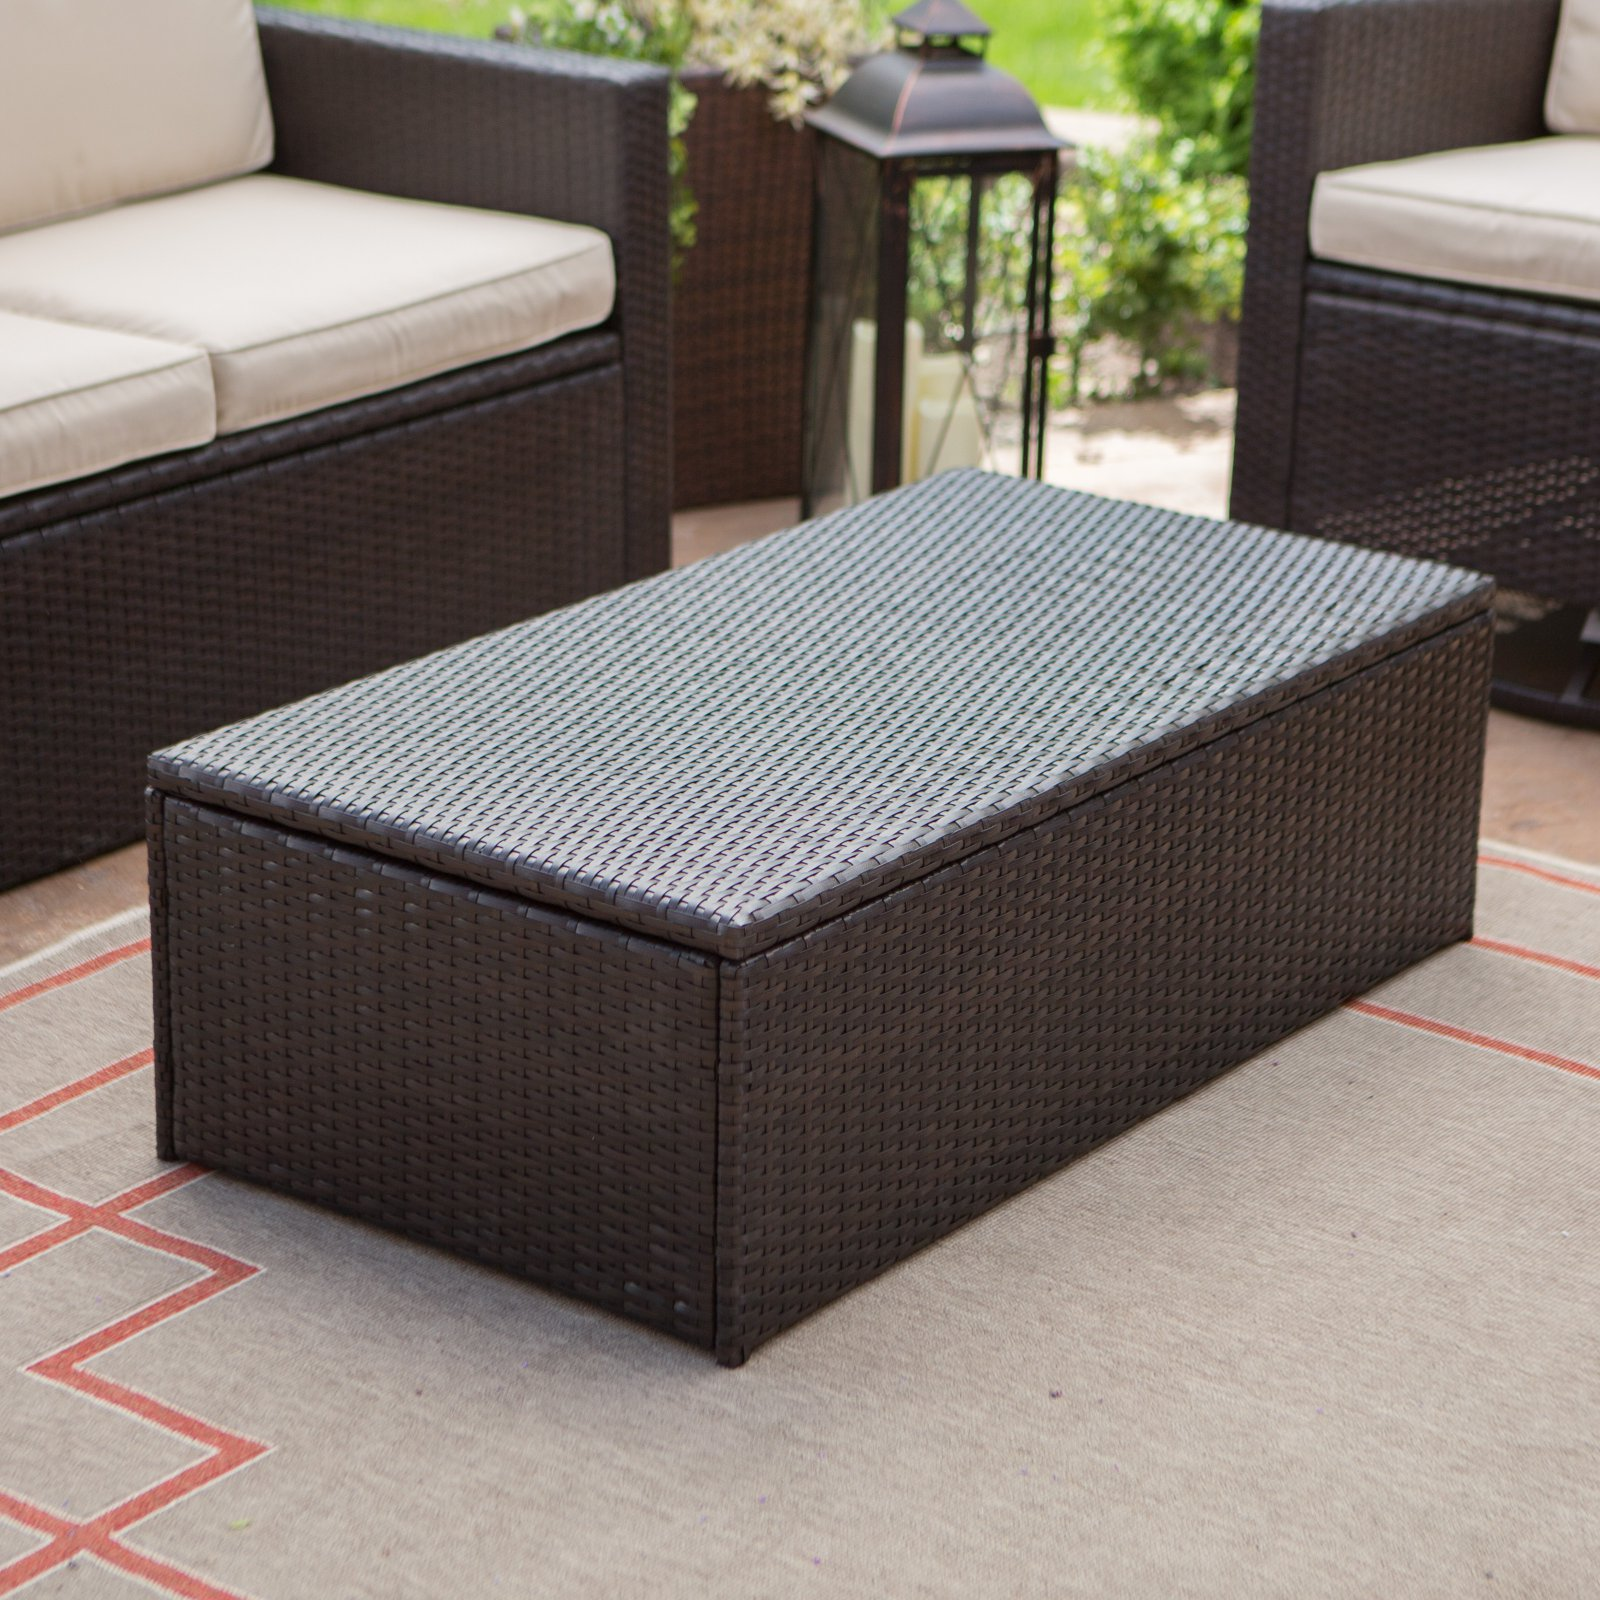 Coral Coast Berea Outdoor Wicker Storage Coffee Table by Modern Marketing Concepts Inc